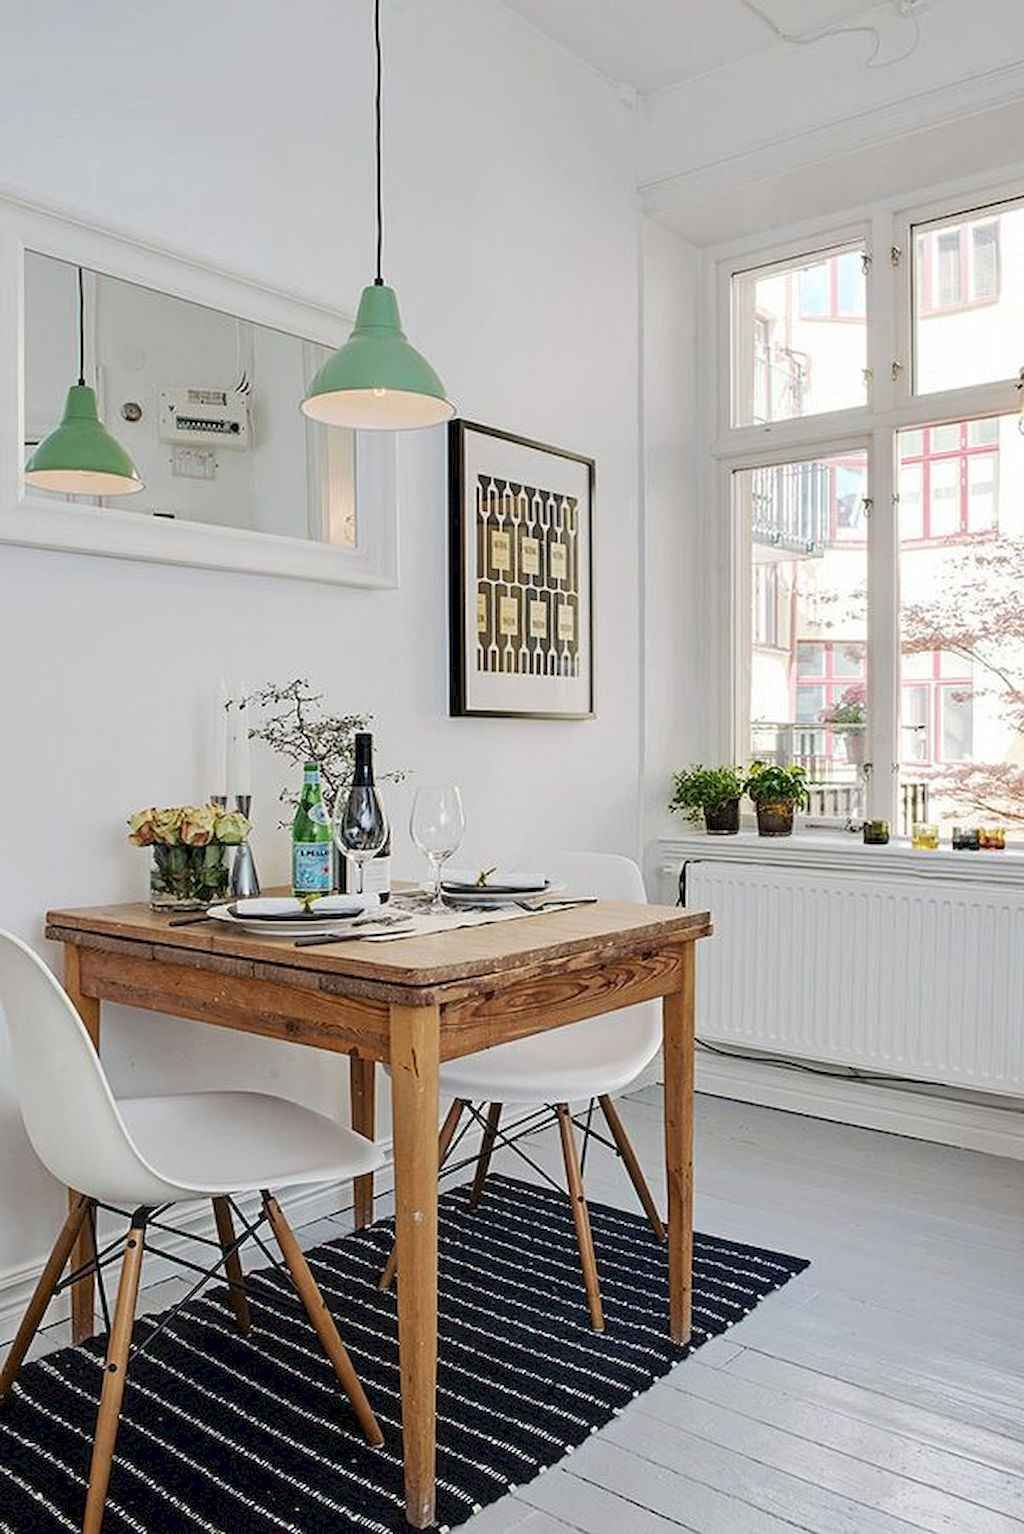 75 Cool Studio Apartment Decorating Ideas (With Images